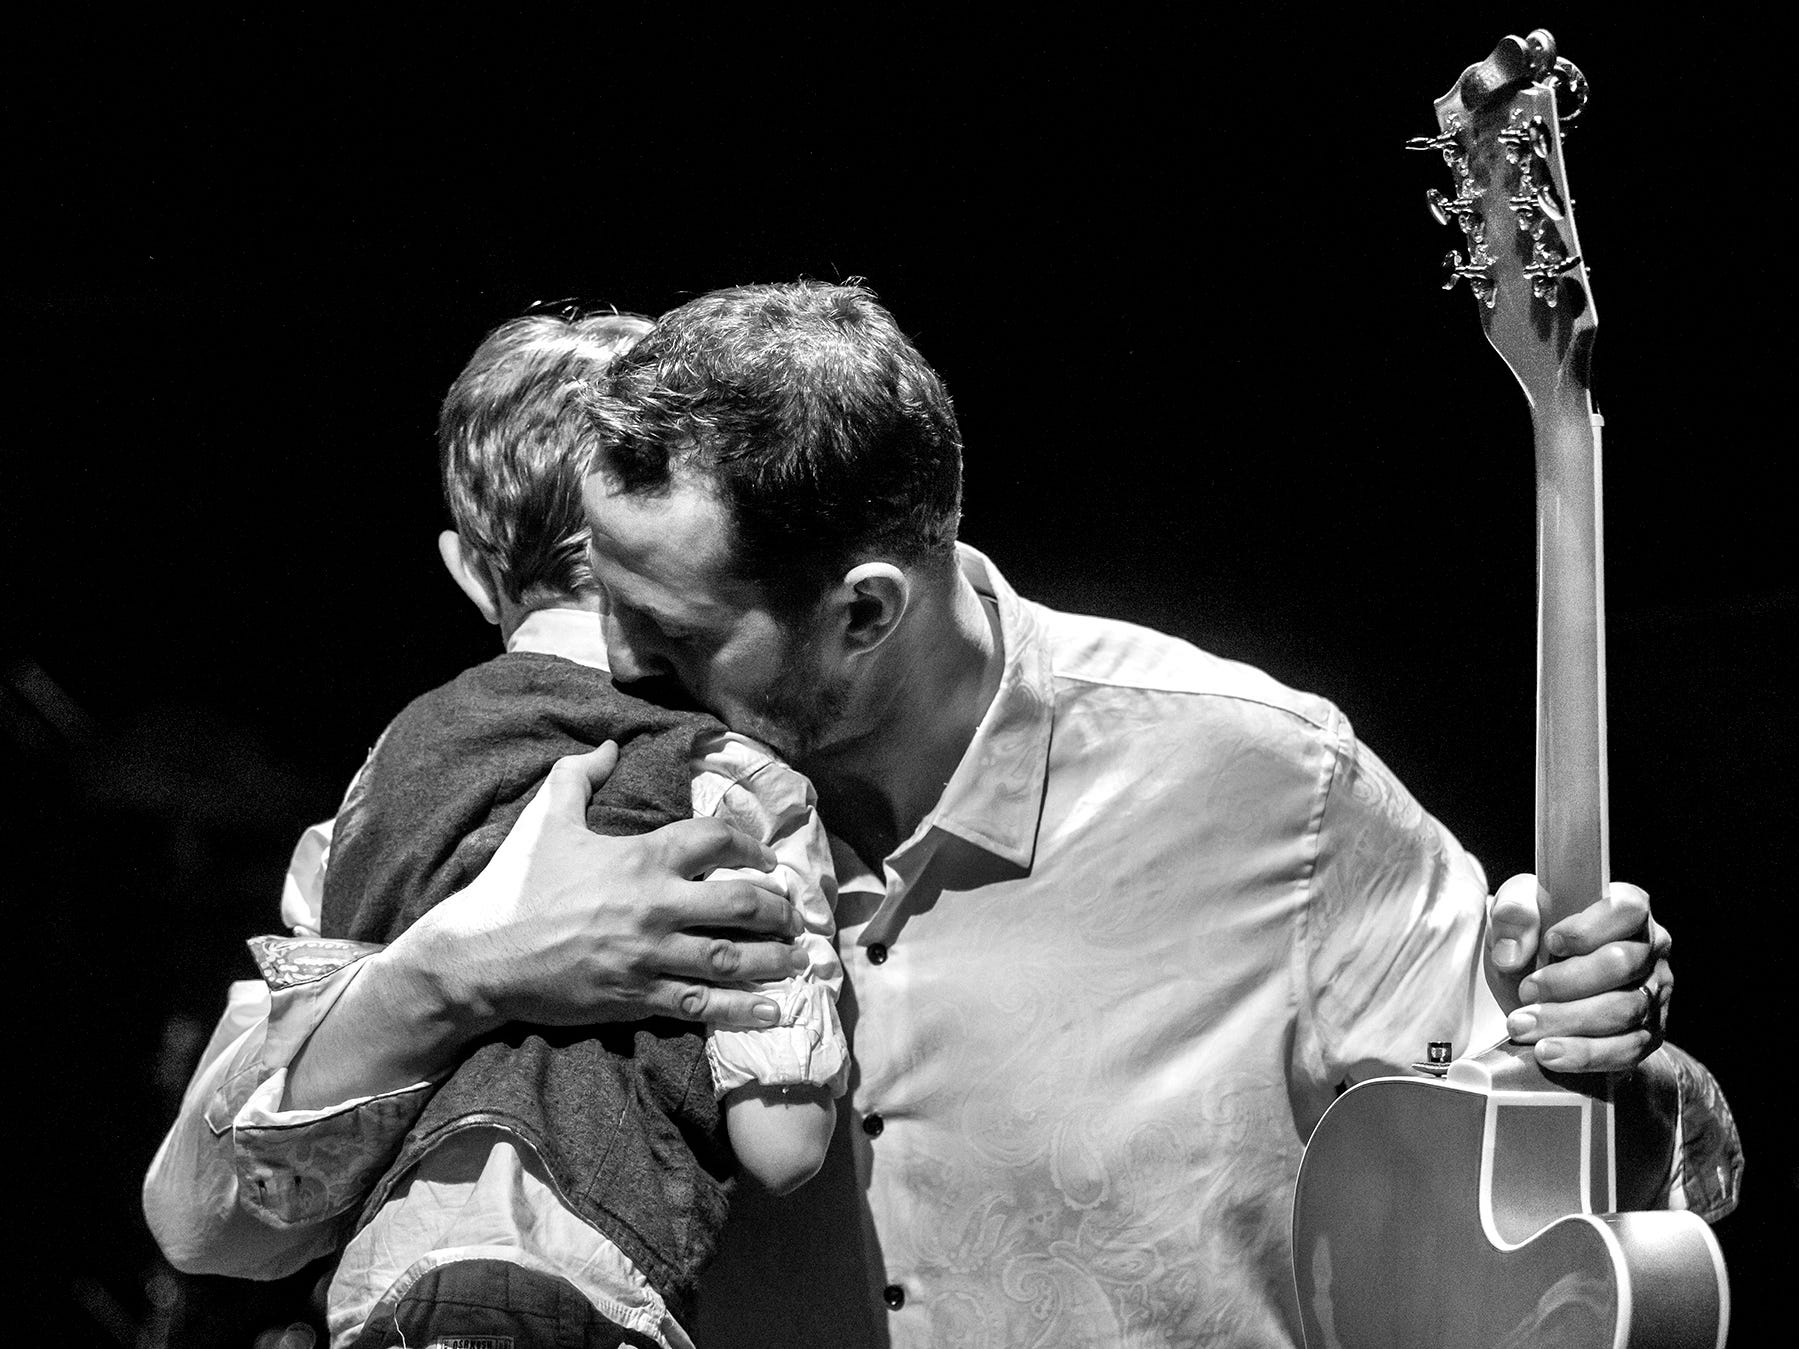 Ryan Metzger hugs his son, Leo, after they perform the encore song together at a fundraiser raising money for Williams syndrome and Autism Speaks. Leo who is 6 has been diagnosed with both disorders.